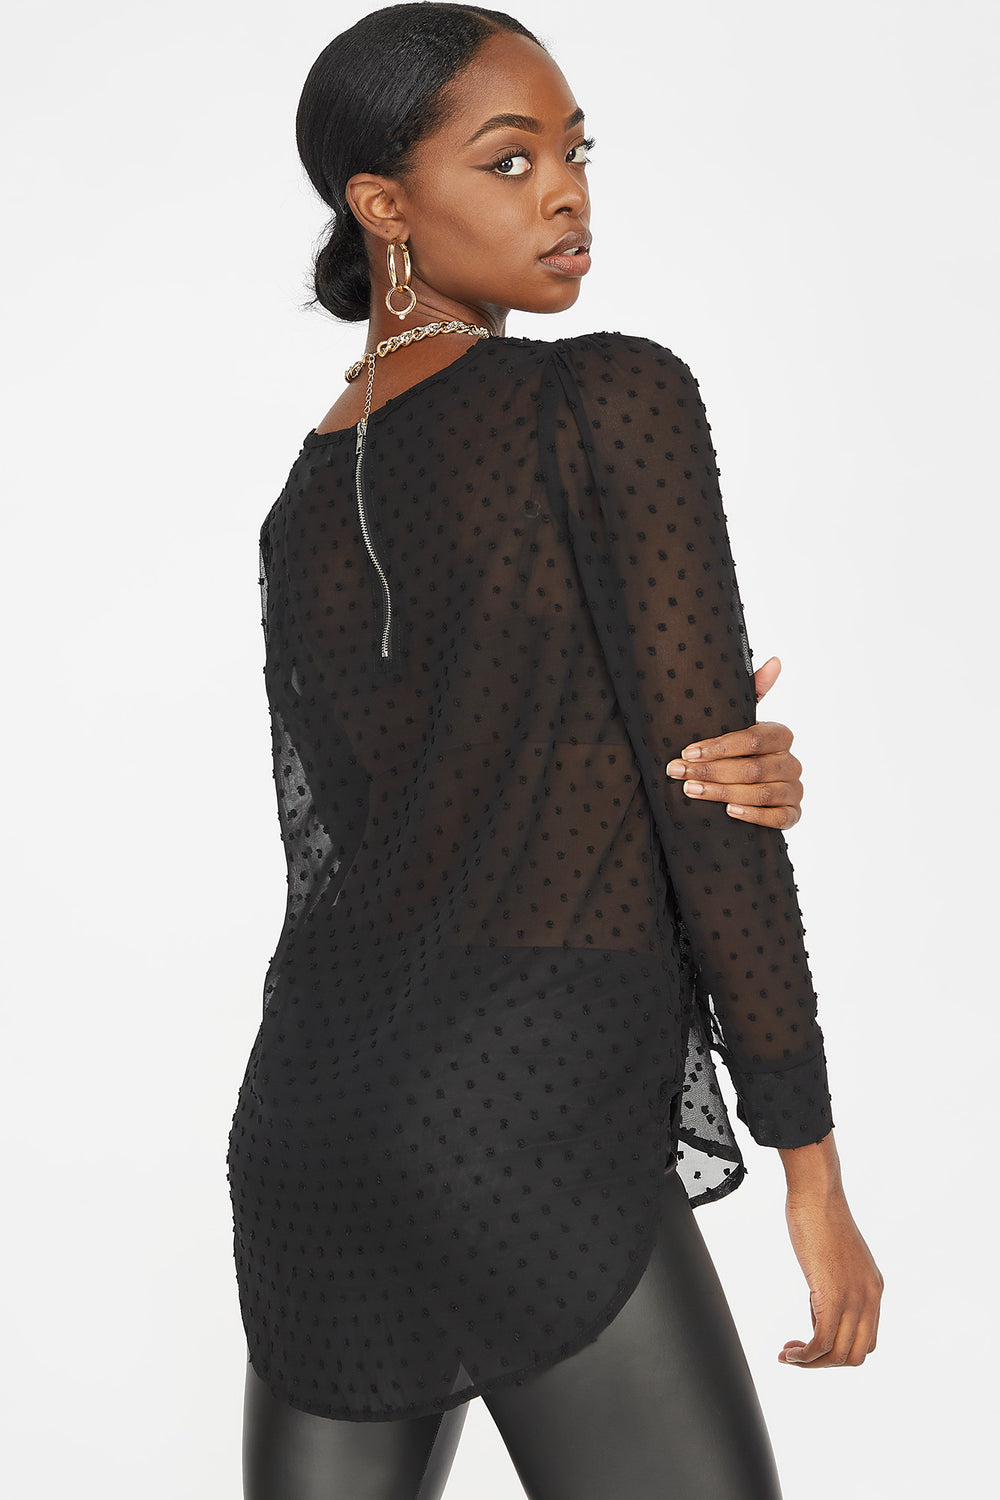 Dotted Mesh Long Puff Sleeve Blouse Black